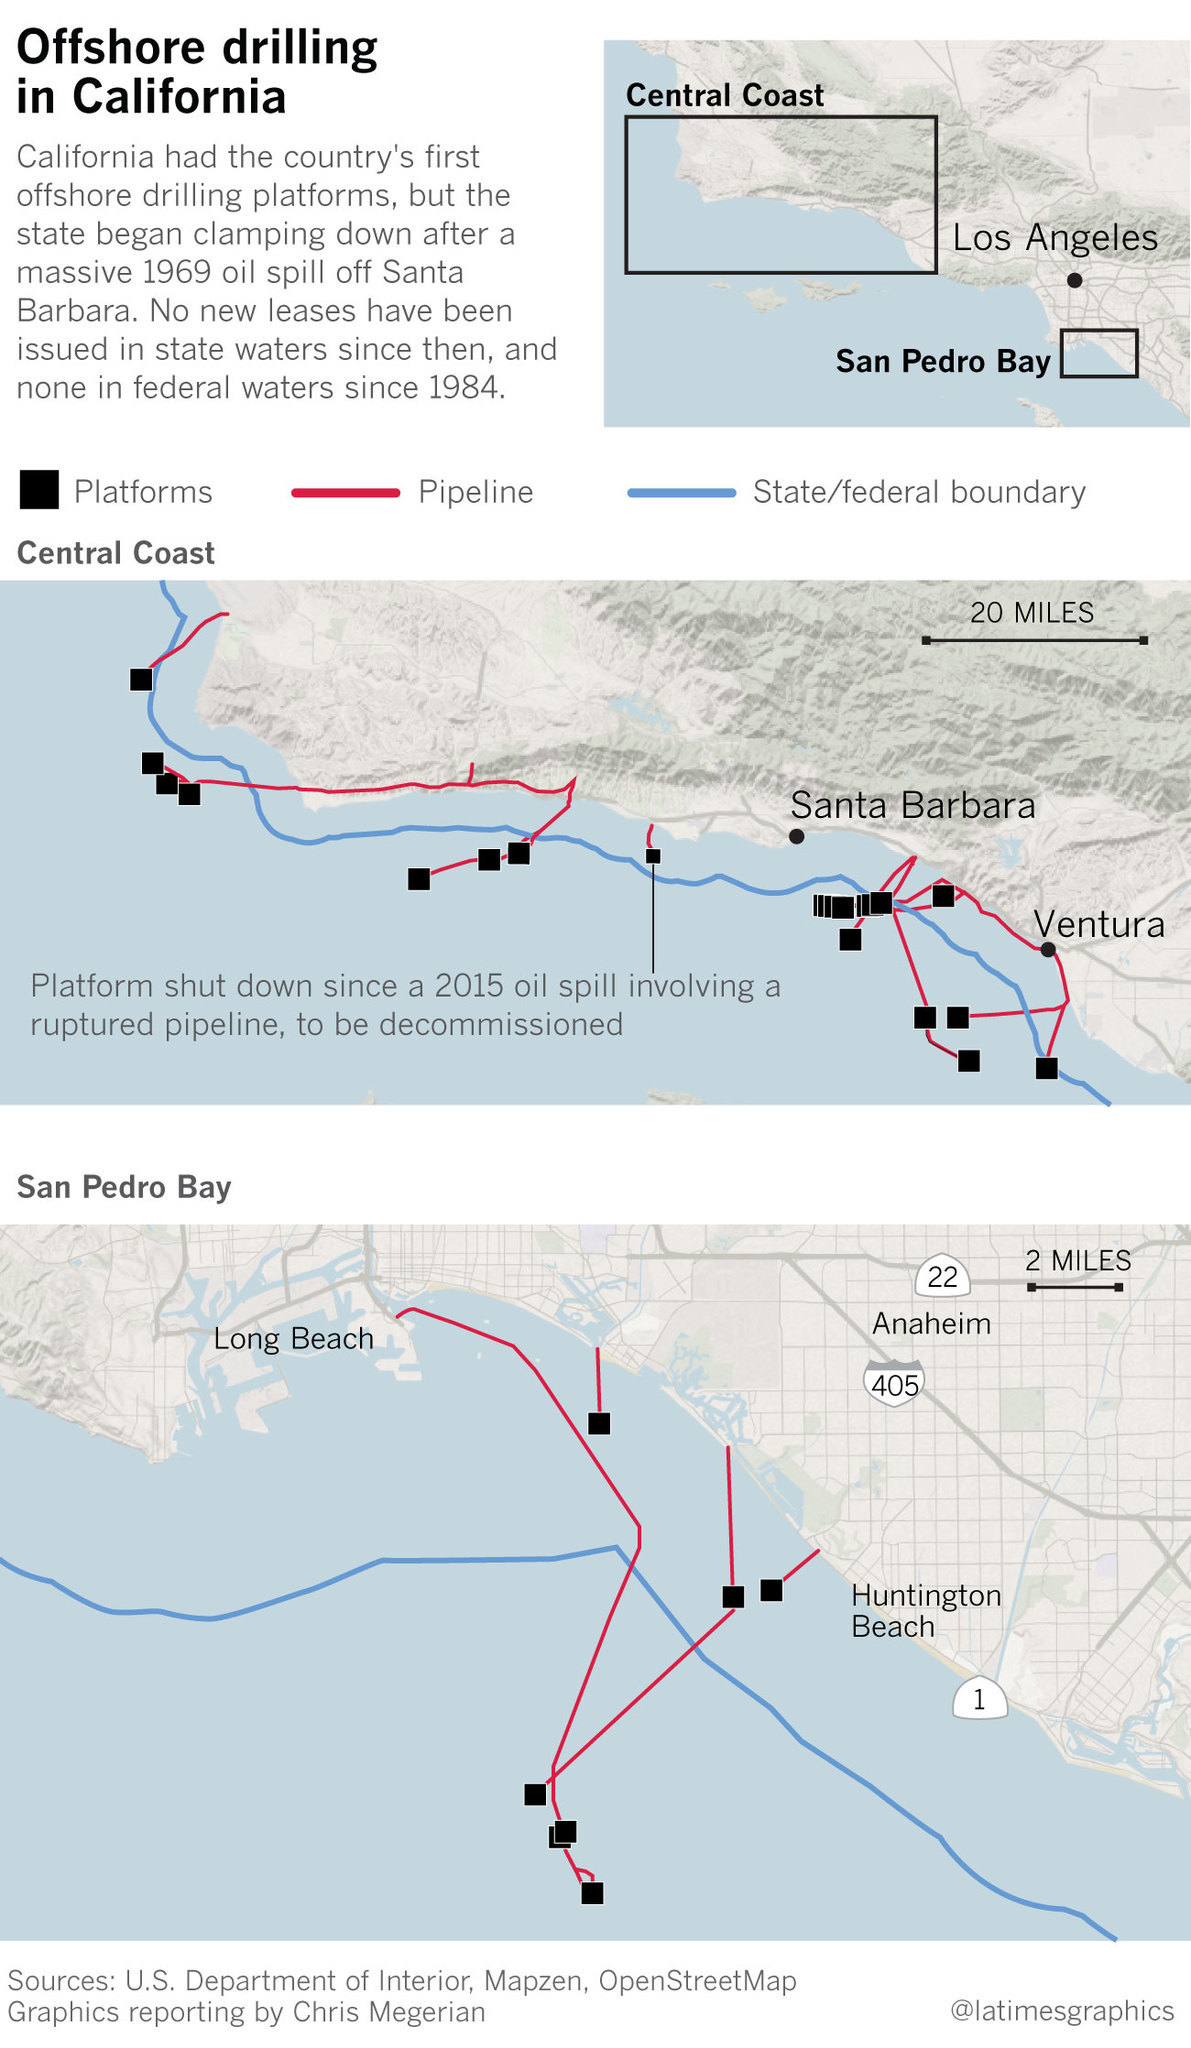 Offshore drilling in California